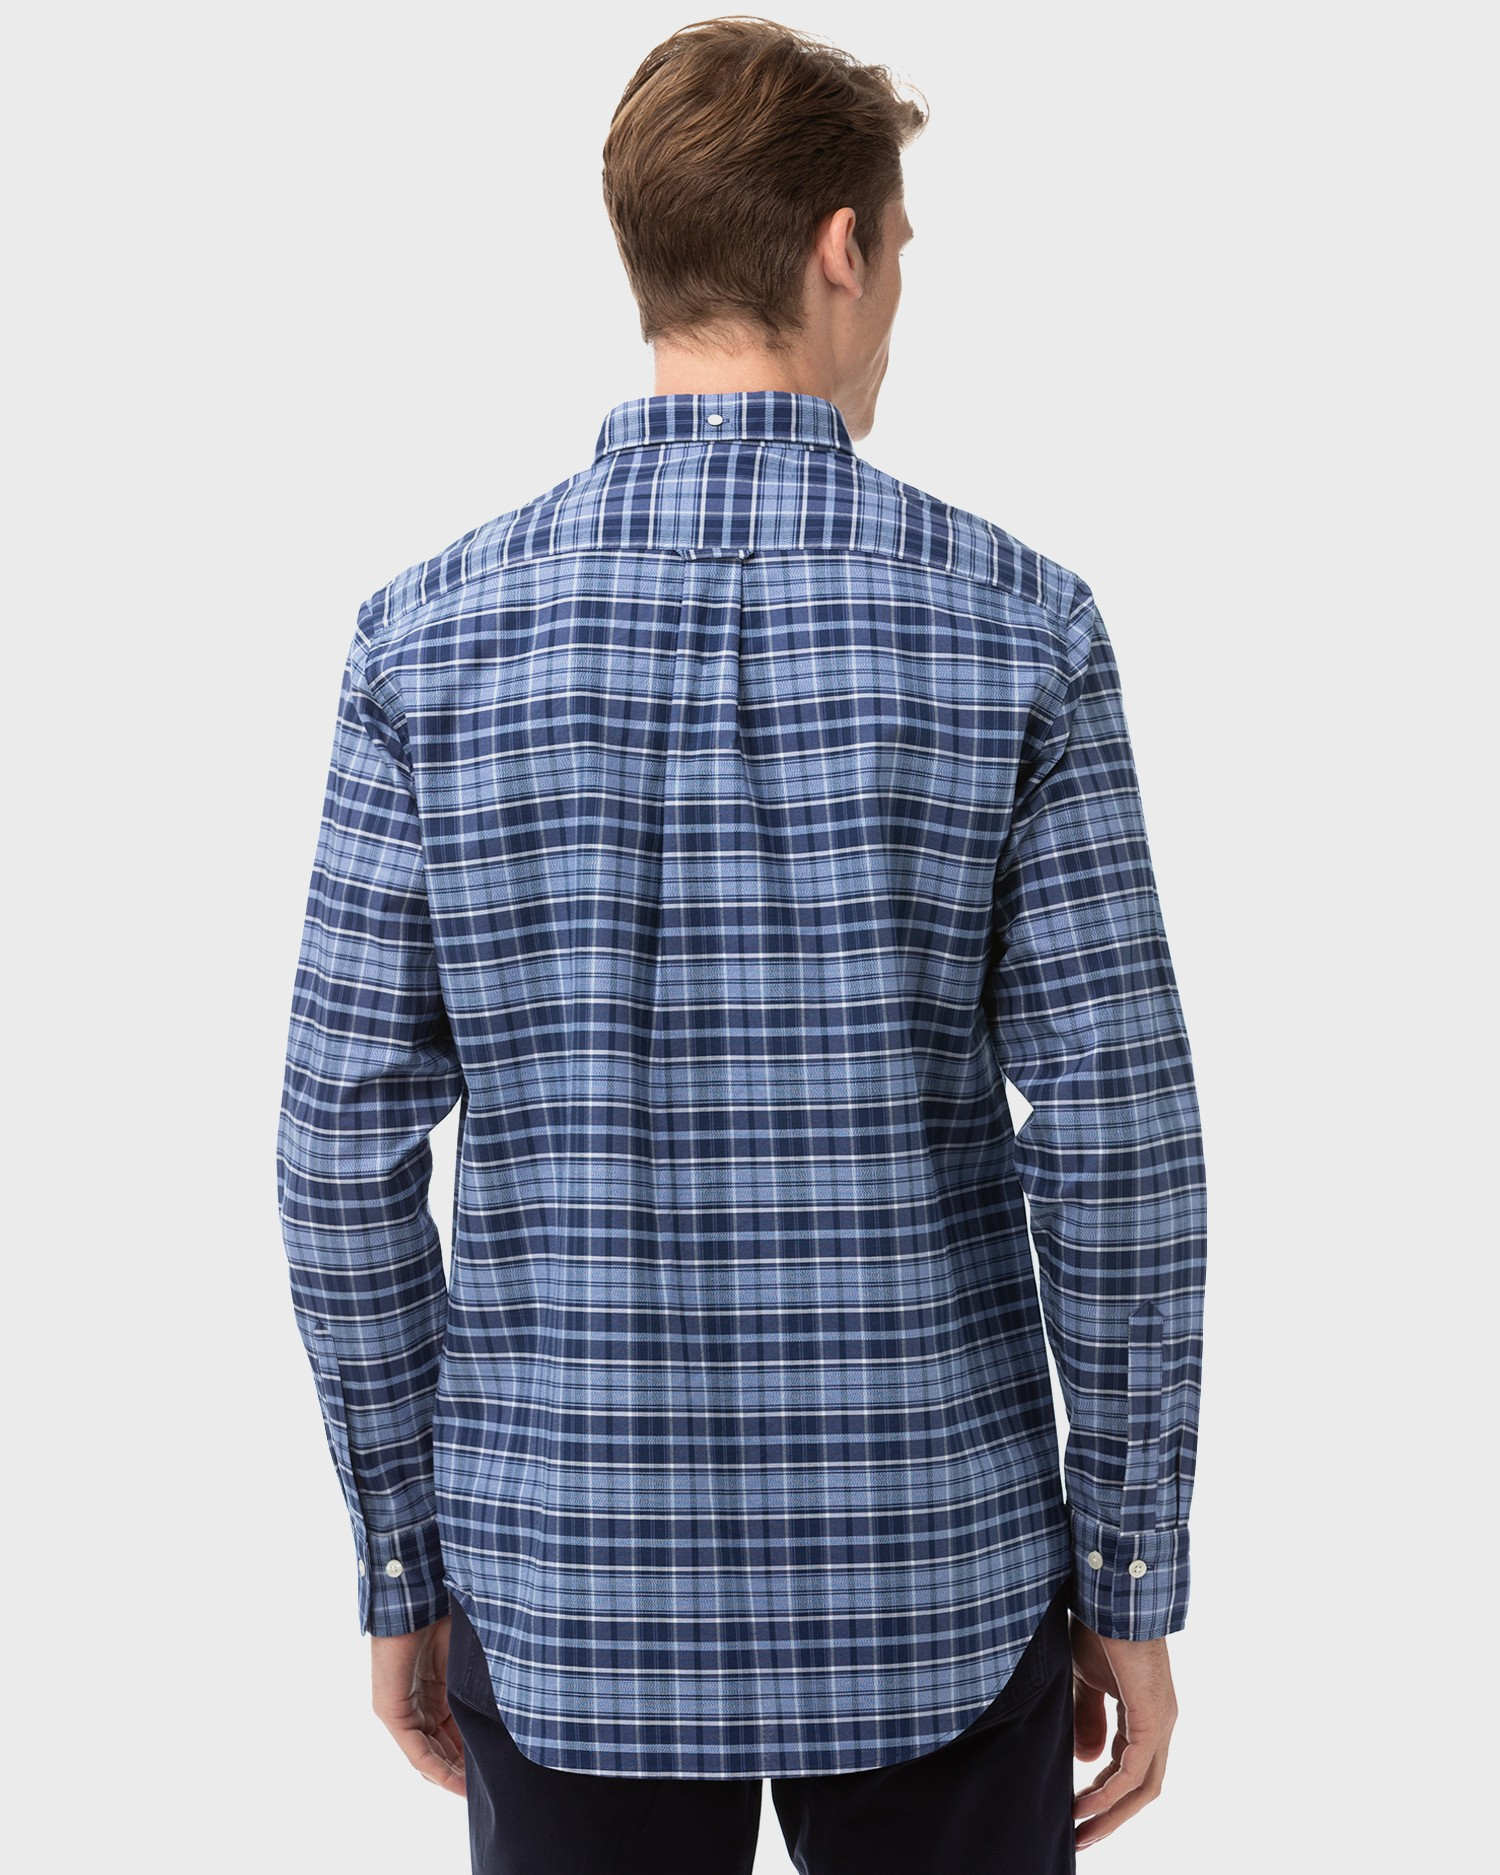 GANT Men's Oxford Check Regular Fit Shirt - 3058200